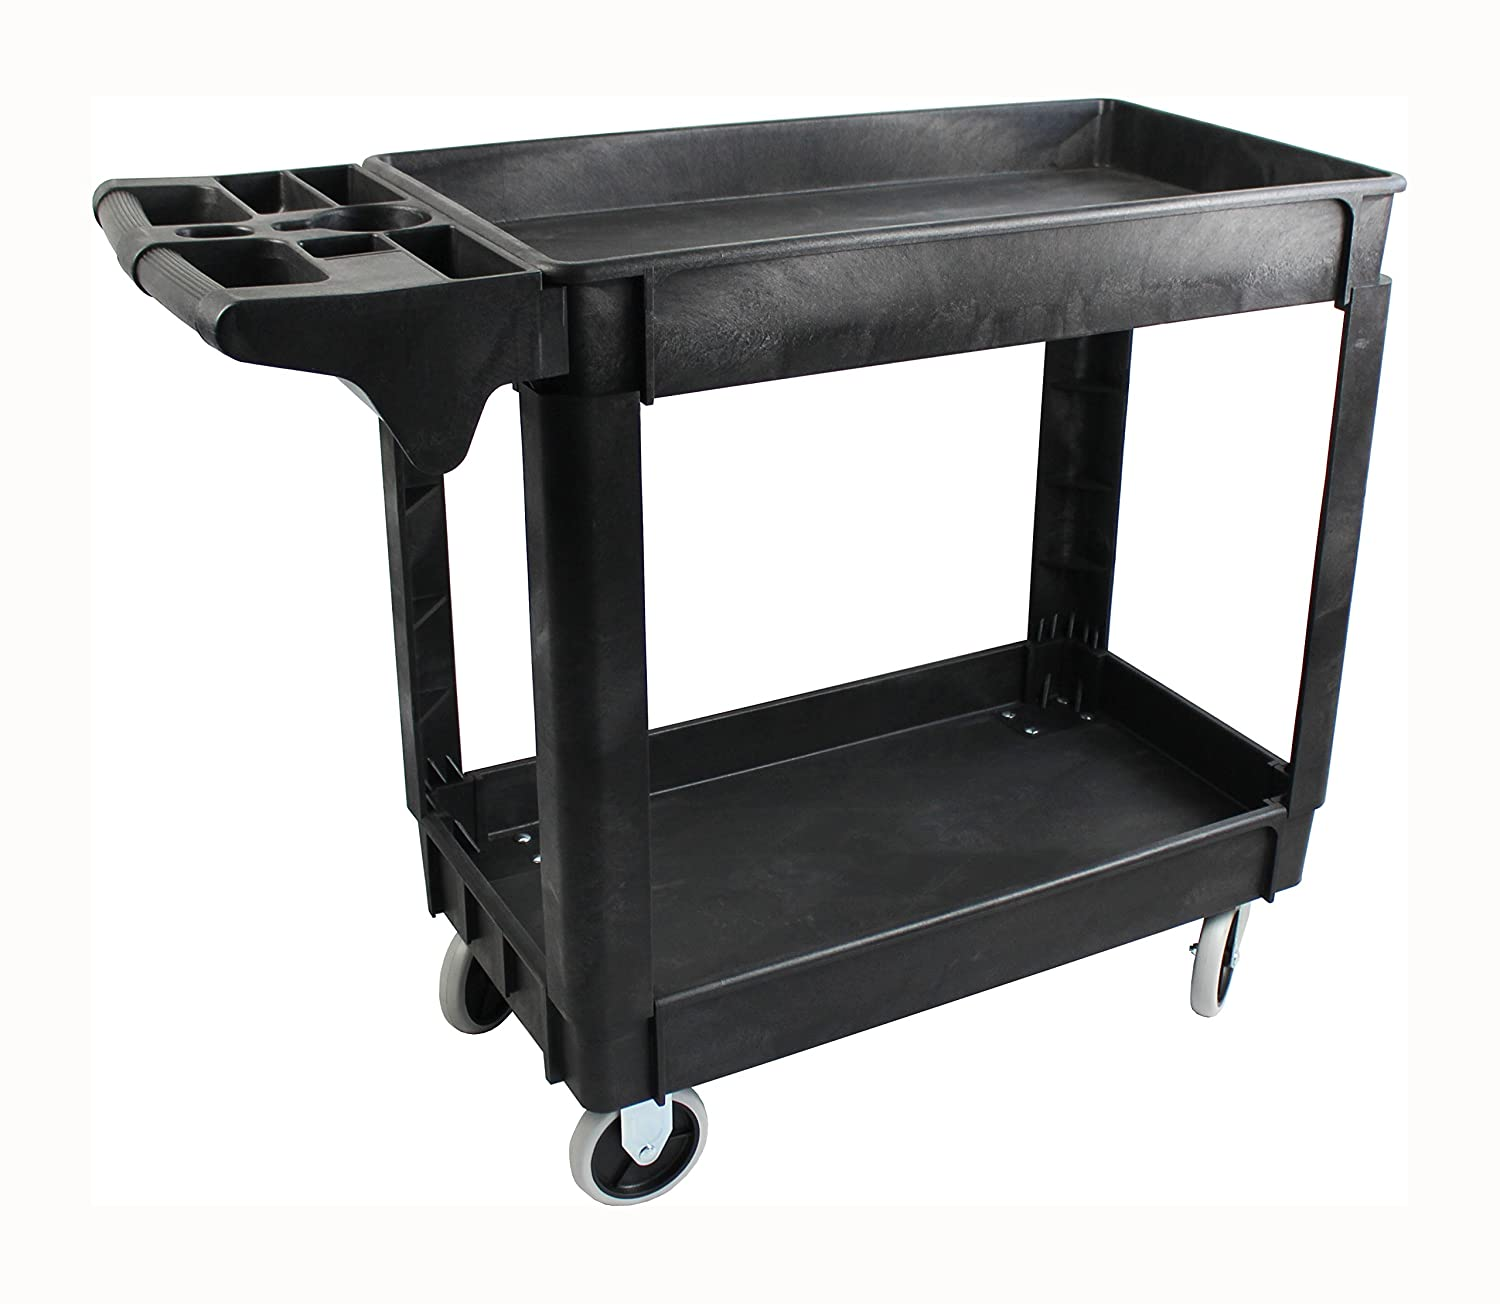 "MaxWorks 80855 500-Pound Service Cart With Two Trays (40"" x 17"" Overall Dimensions)"